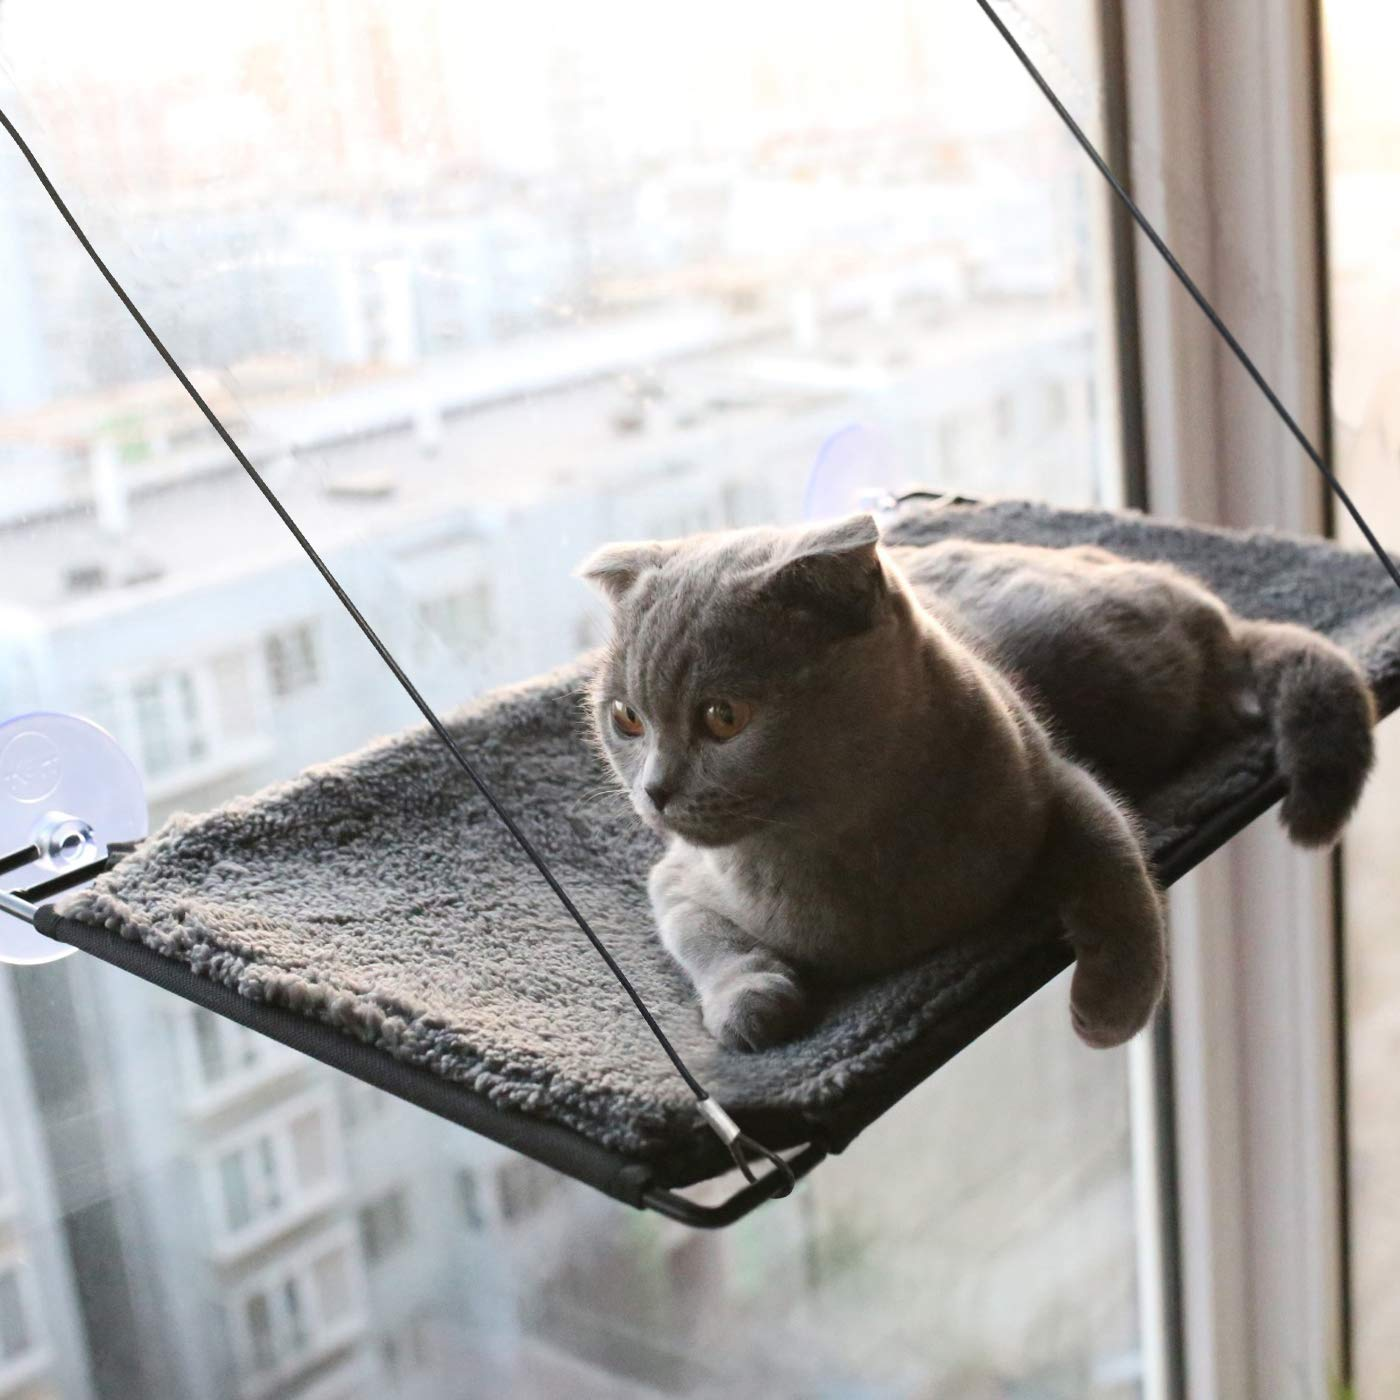 """BobbyPet Cat Window Perch Warm Cotton Fabric - Single Layer 12""""x22.8"""" EXTERMELY Durable Suction Cups can Holds Huge Cats Easy Set up Within 5 Minutes product image"""